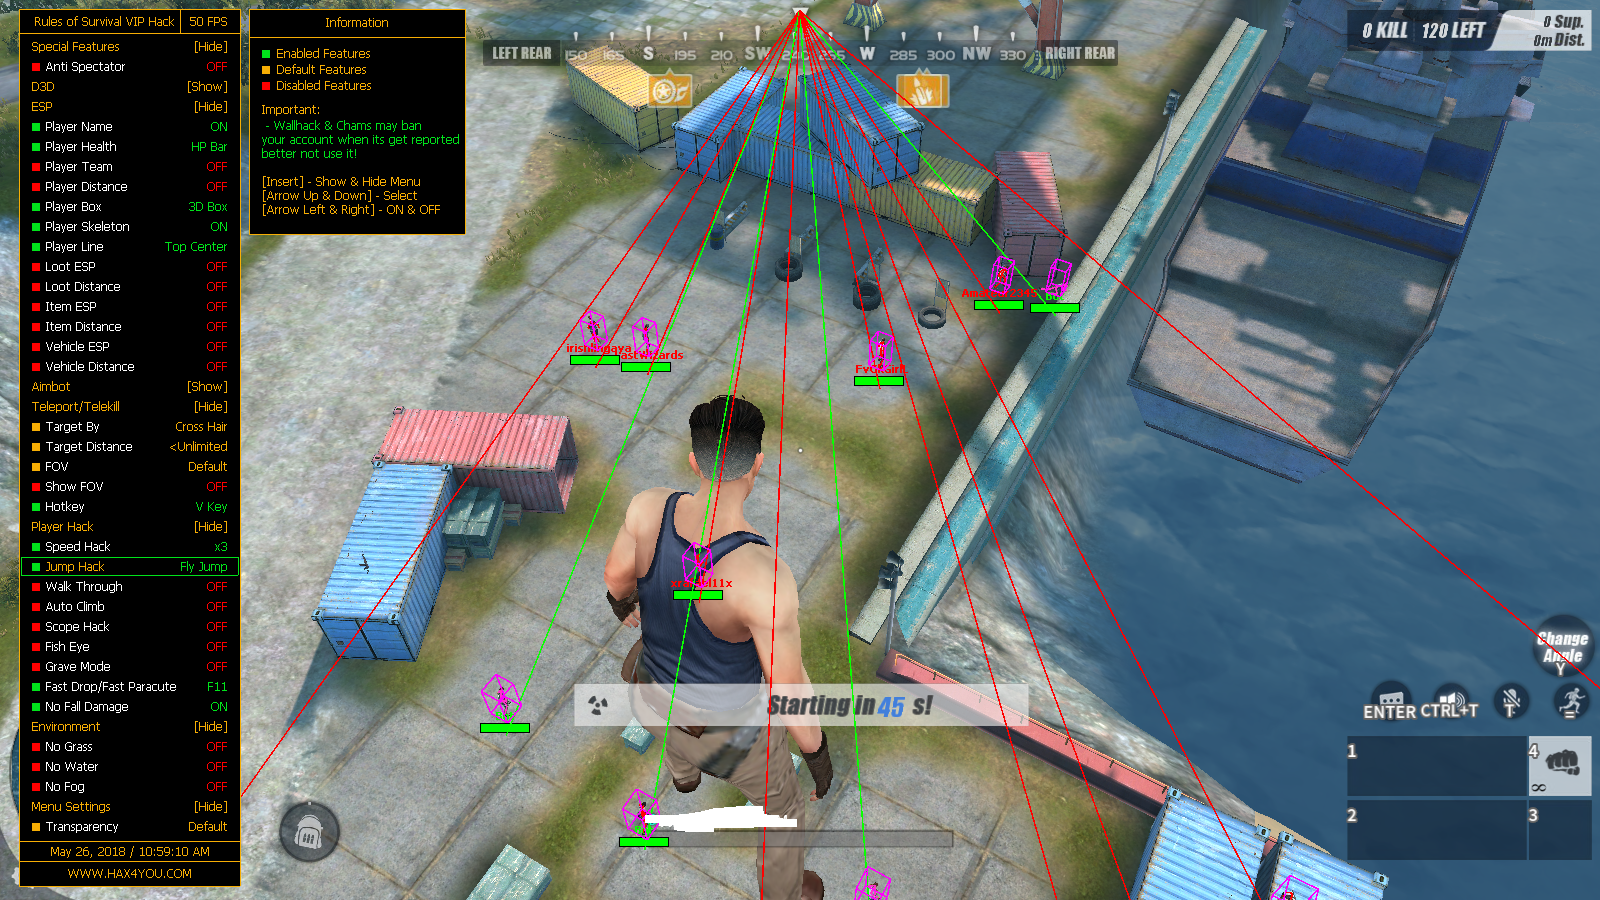 RULES OF SURVIVAL FREE VIP CHEAT/HACK (MAY 26, 2018) NEW FEATURES